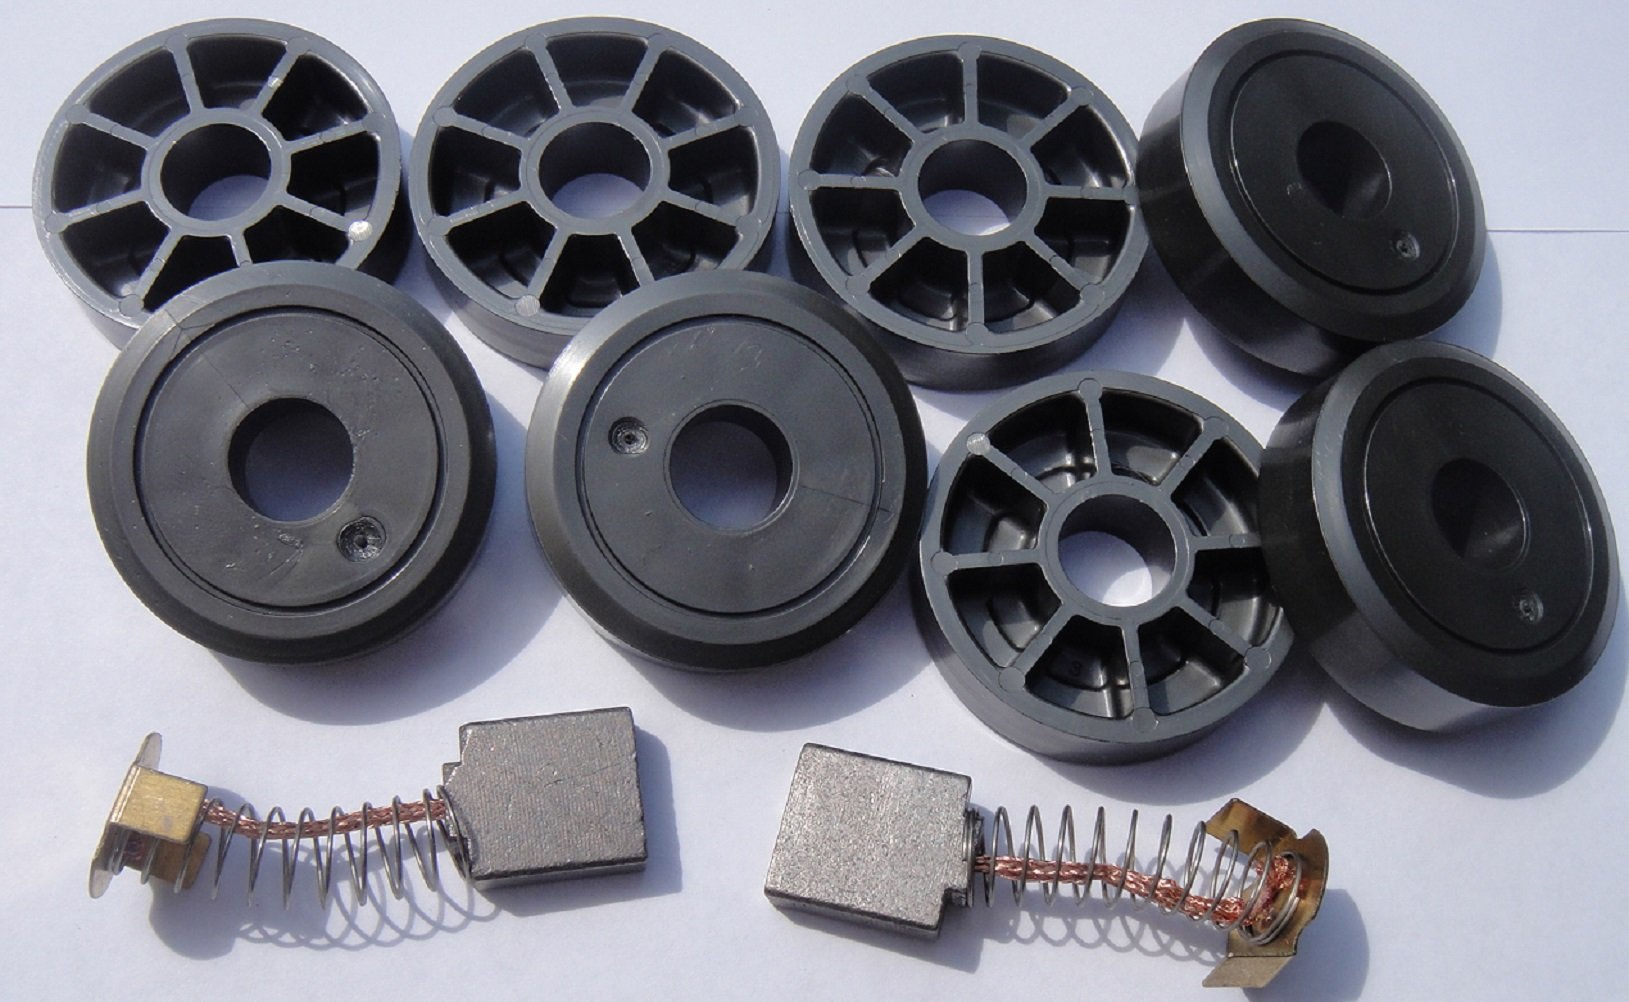 Harmar SL350 Service Kit - (2) Motor Brushes & (8) Wheels - Free Shipping